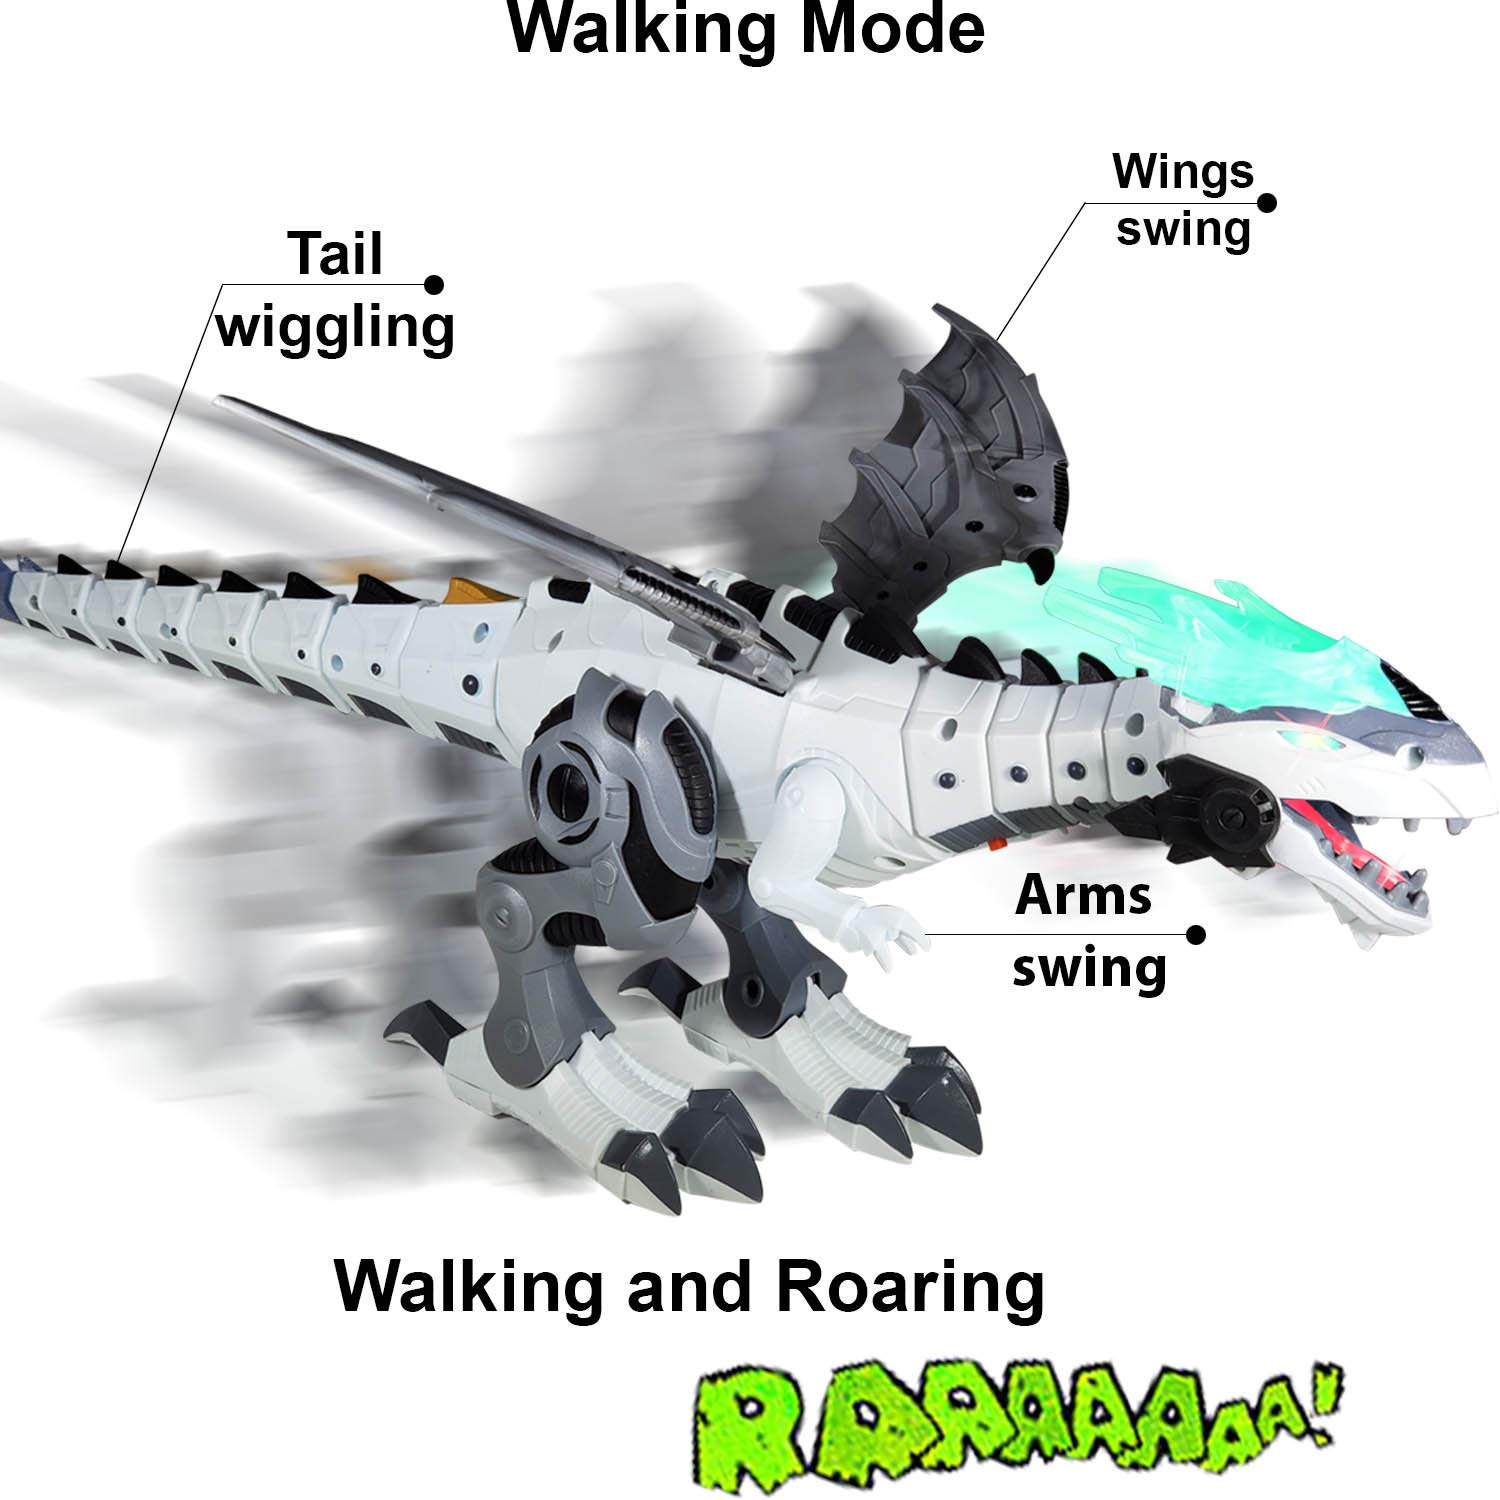 Breathing Fire Premium Dragon Toy // Dinosaur Toy for Kids Colors Vary, Age 3+ Mist Battery Operated Flying Dragon Walking and Roaring Dual Play Modes Wings and Tail Swing